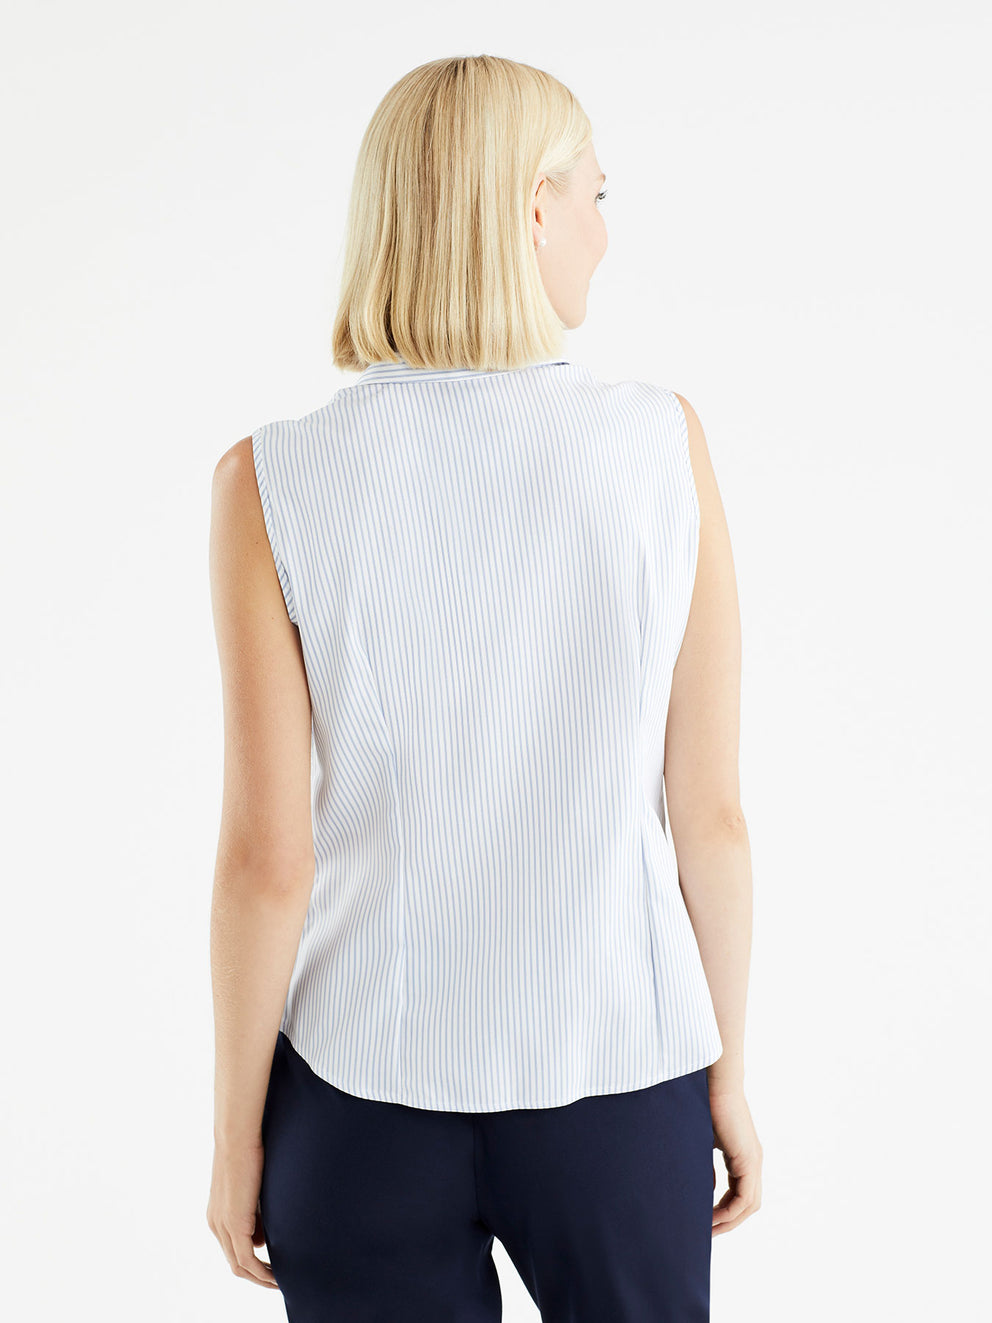 The Jones New York Non-Iron Sleeveless Shirt in color Classic Striped Blue - Image Position 3